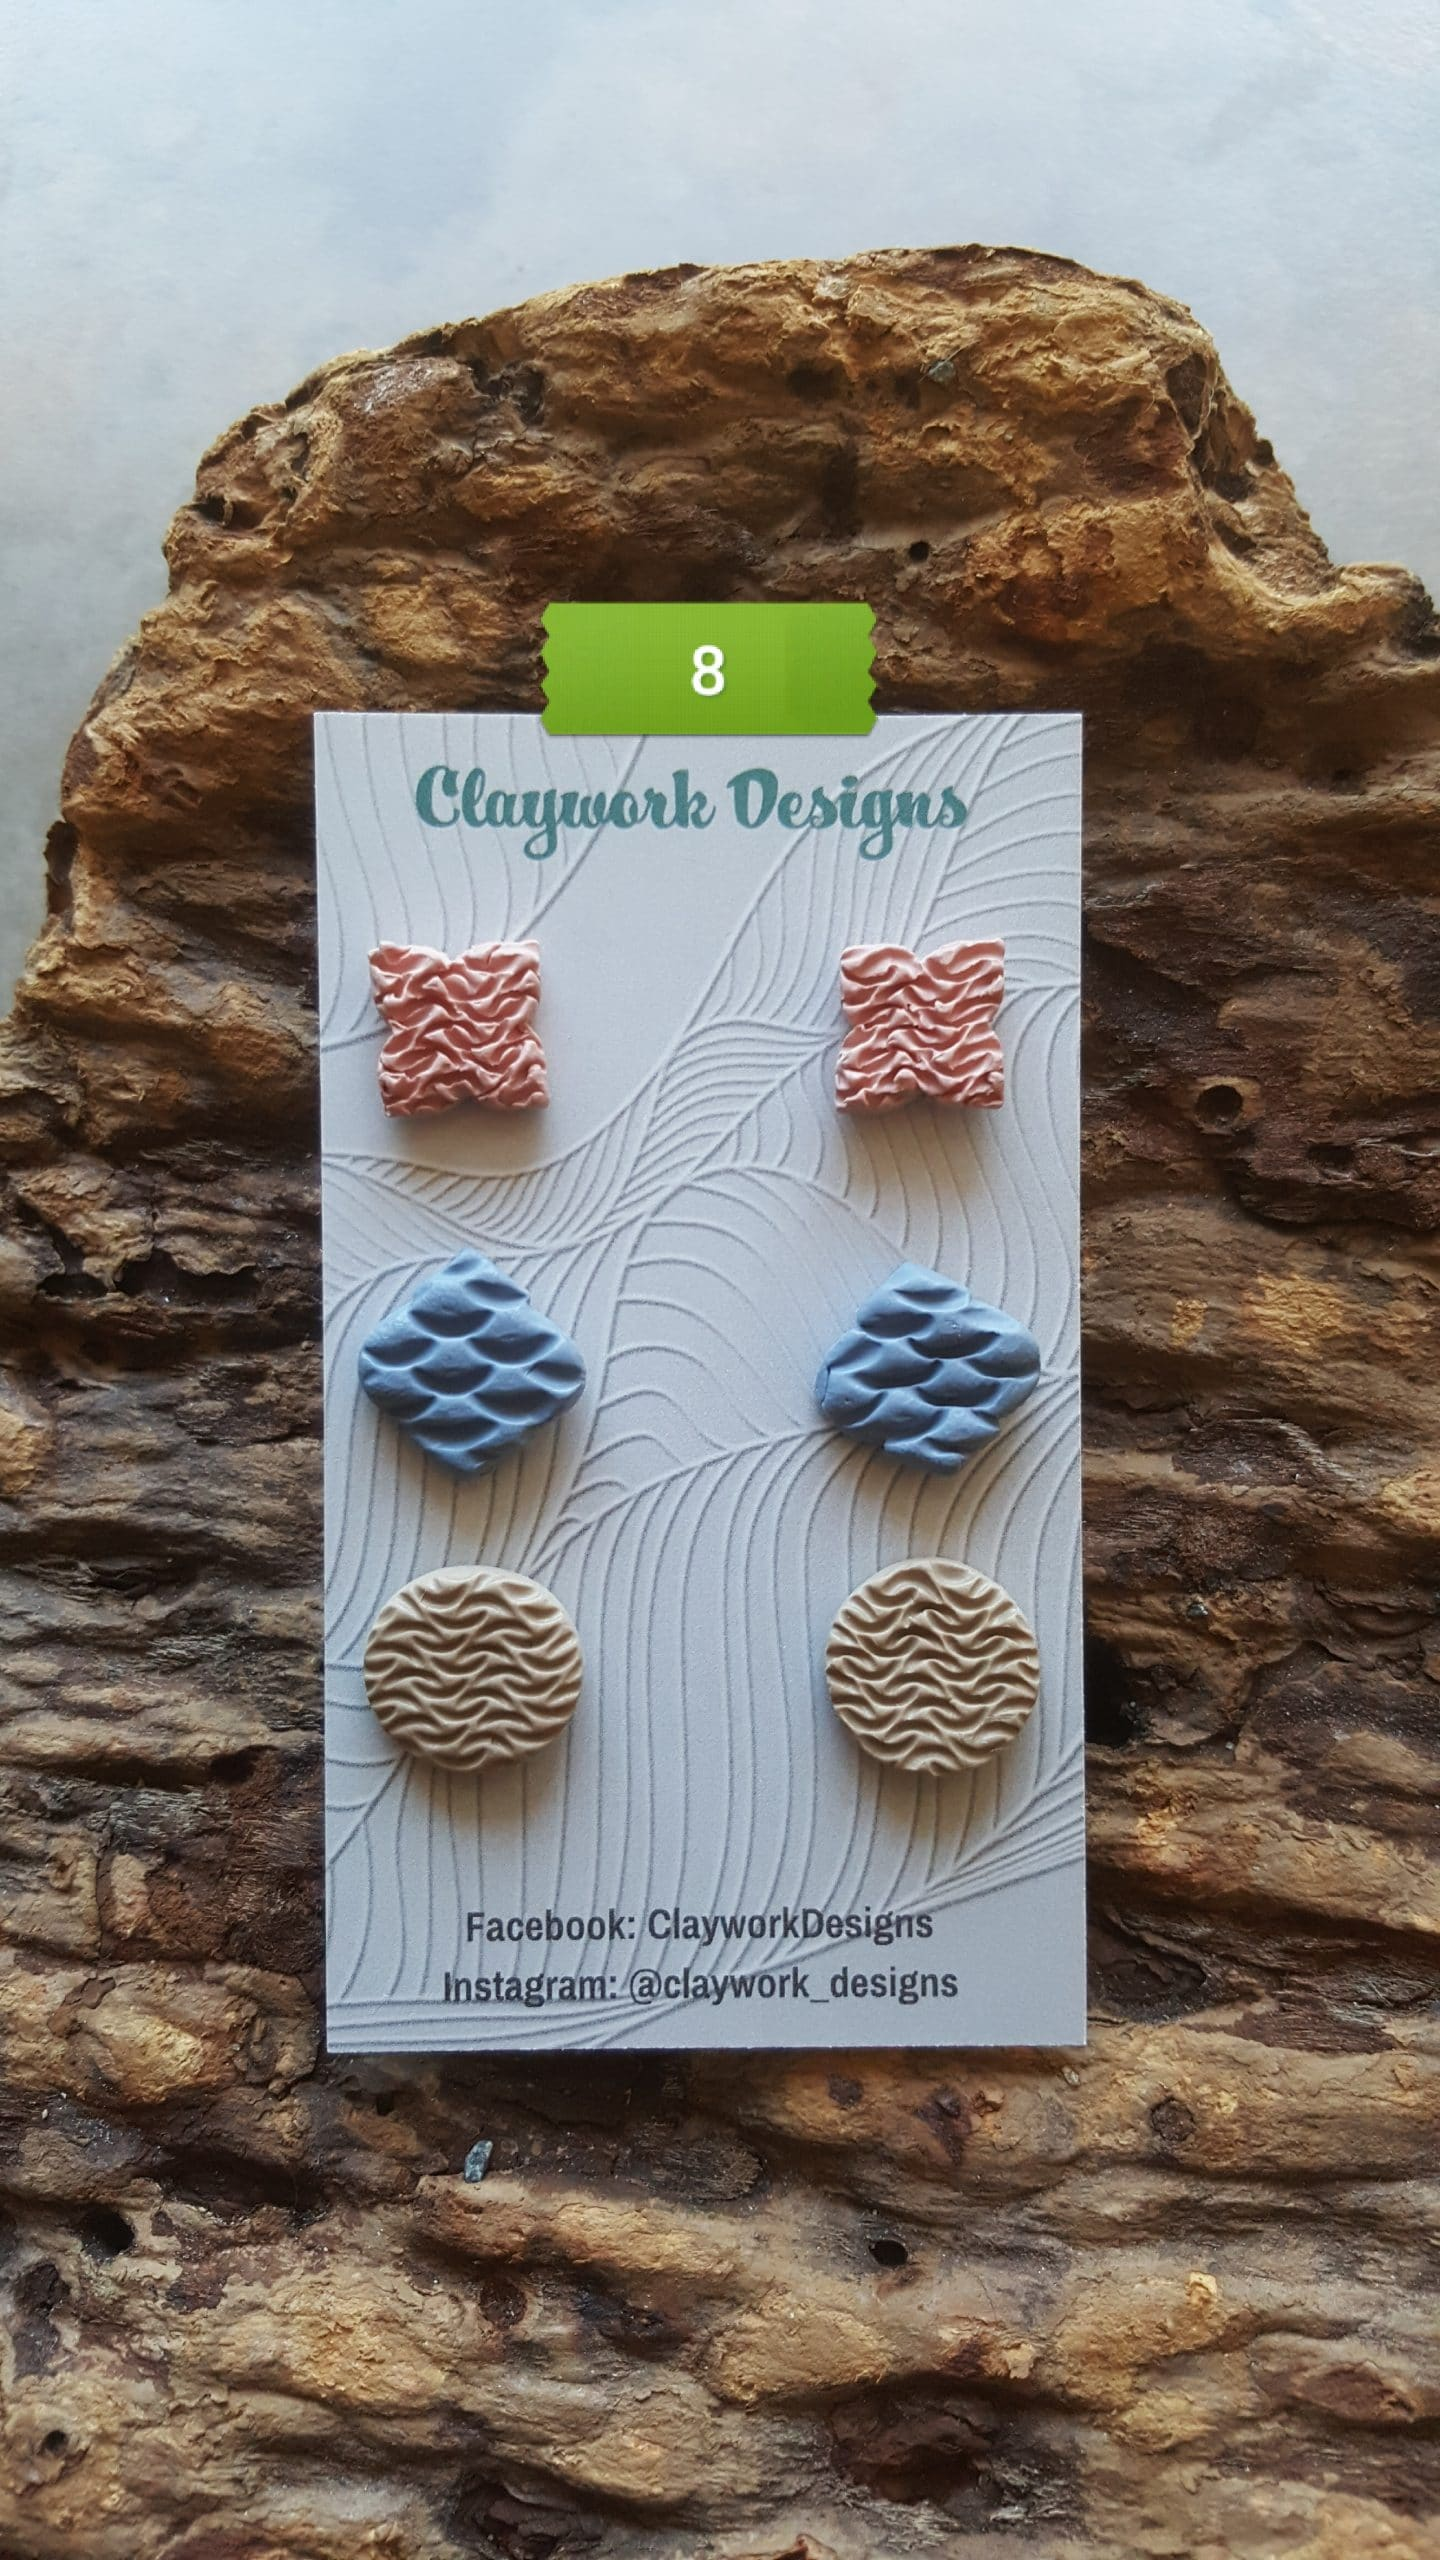 Wirework Designs | Handcrafted chainmaille jewellery and chainmaille products | Chainmaille Weave Stud Earring - 3 Packs | 20210620_172319